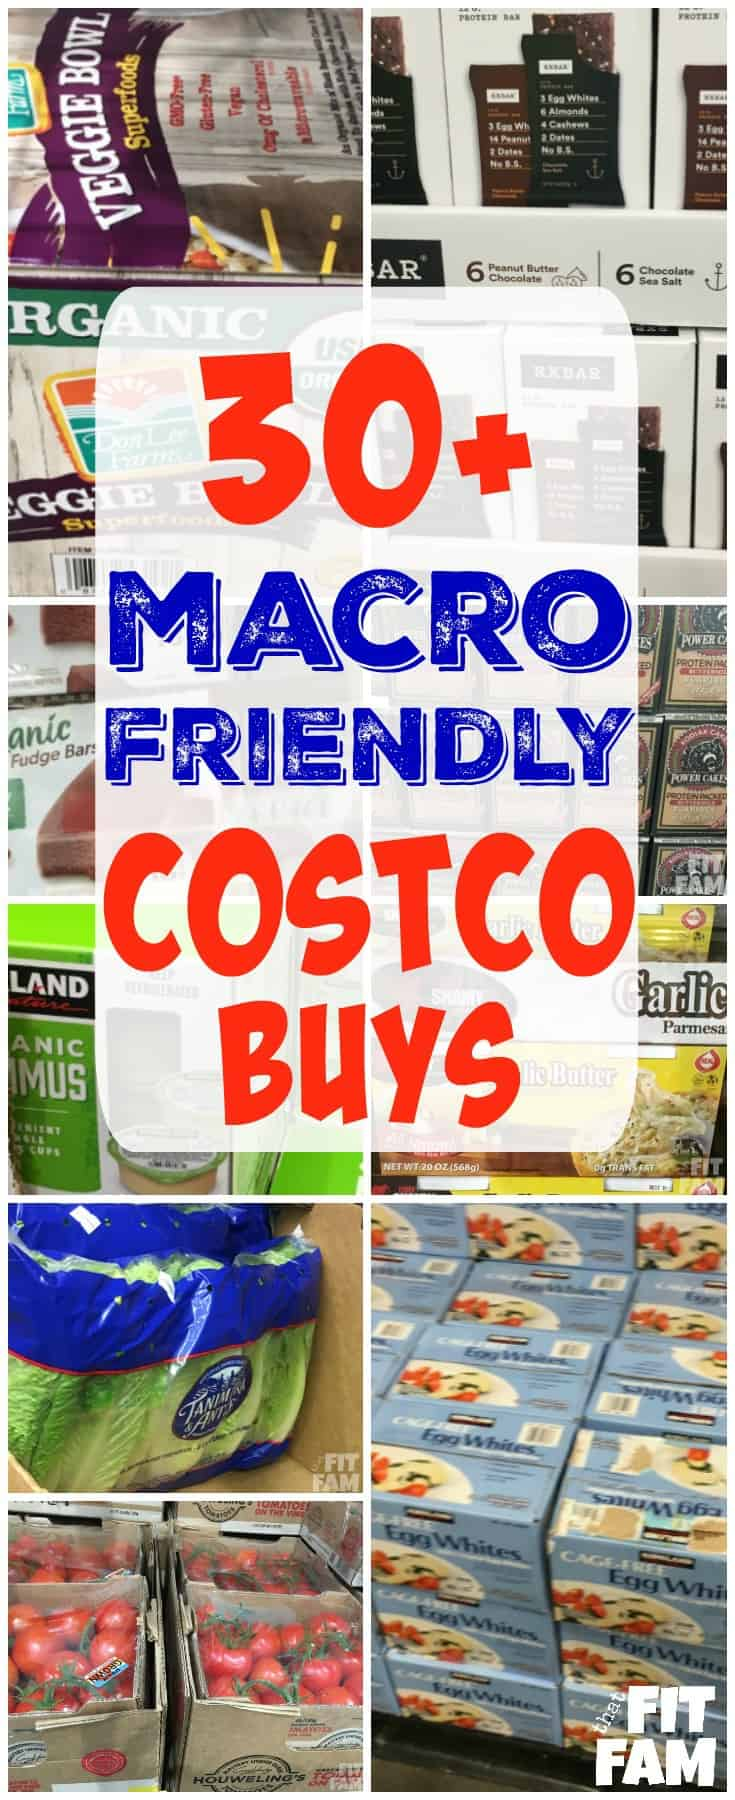 Over 30 macro friendly Costco buys organized by section. These are perfect whether you follow the IIFYM diet or are just looking to eat healthier!